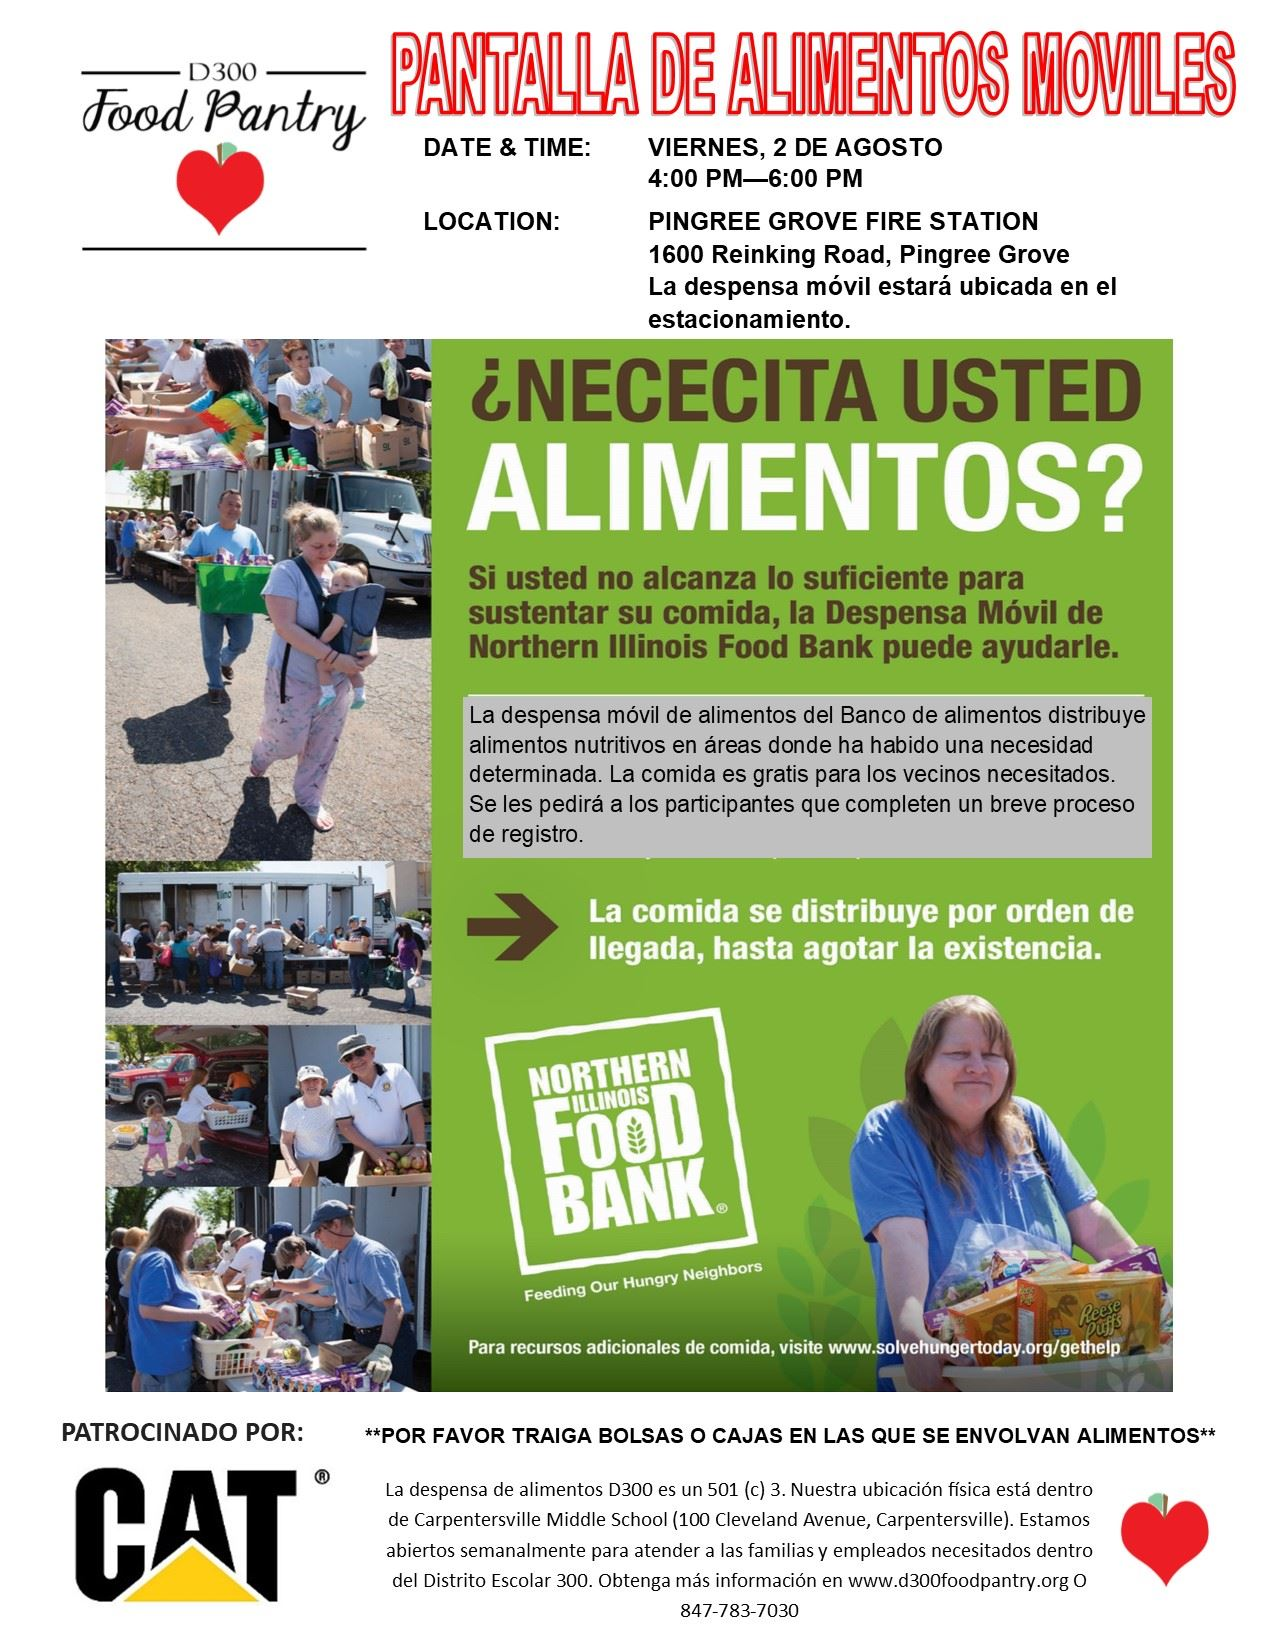 Mobile Pantry Flyer - SPANISH - Pingree Grove - 08.02.19